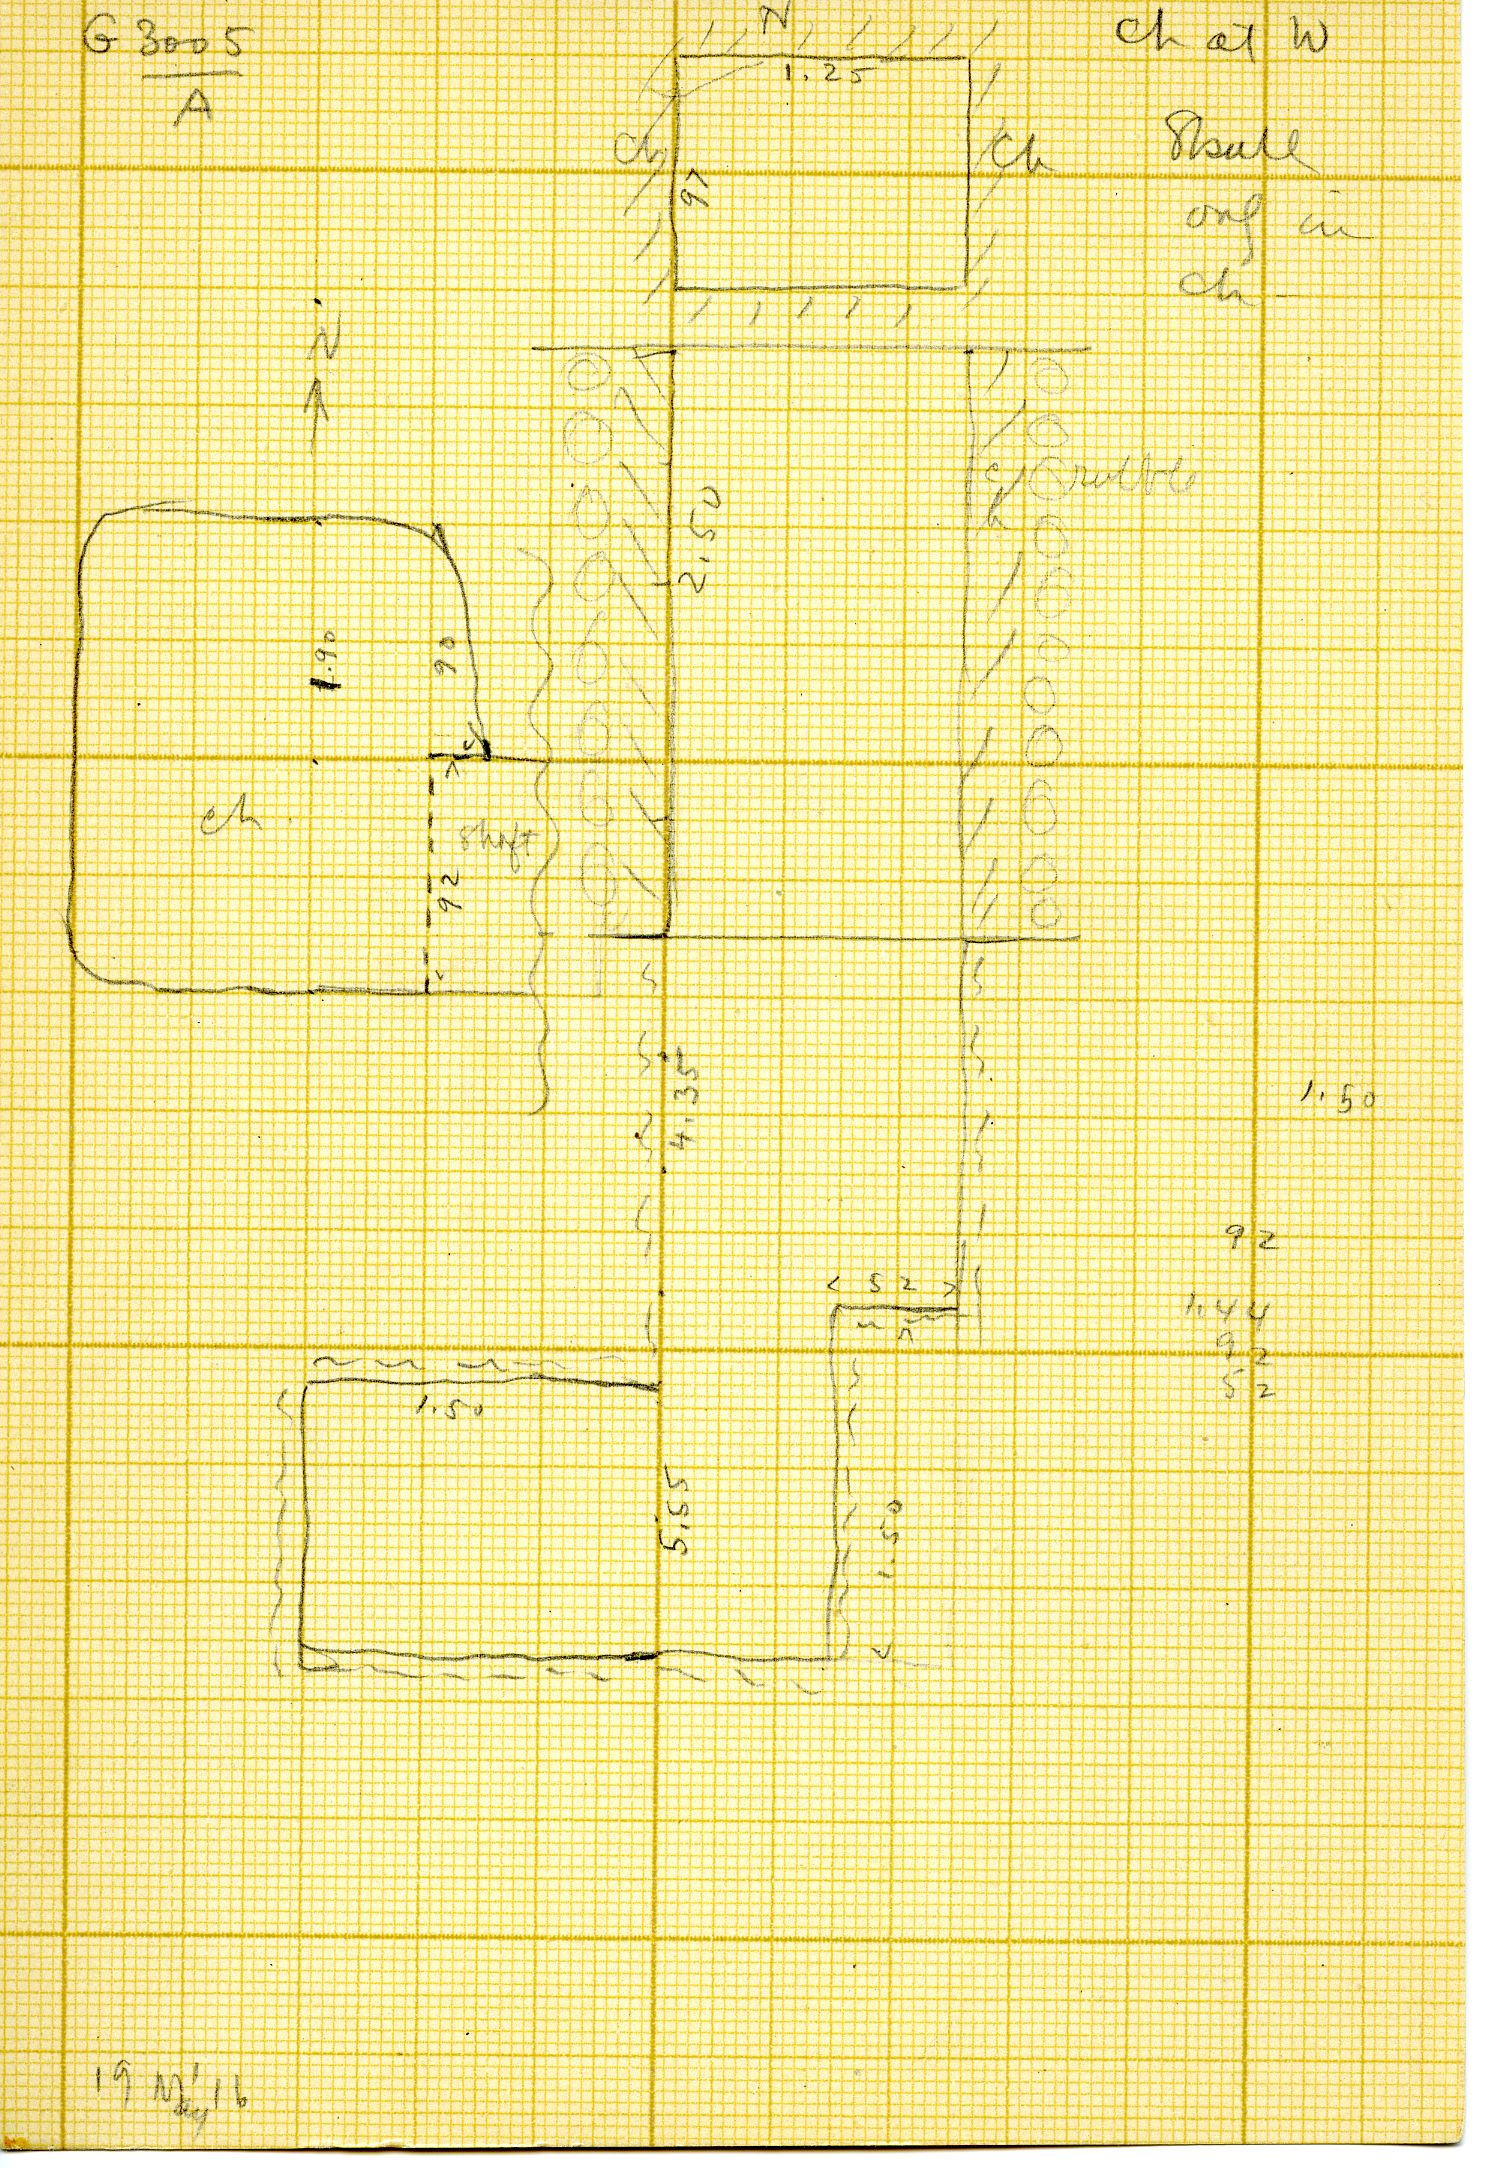 Maps and plans: G 3005, Shaft A